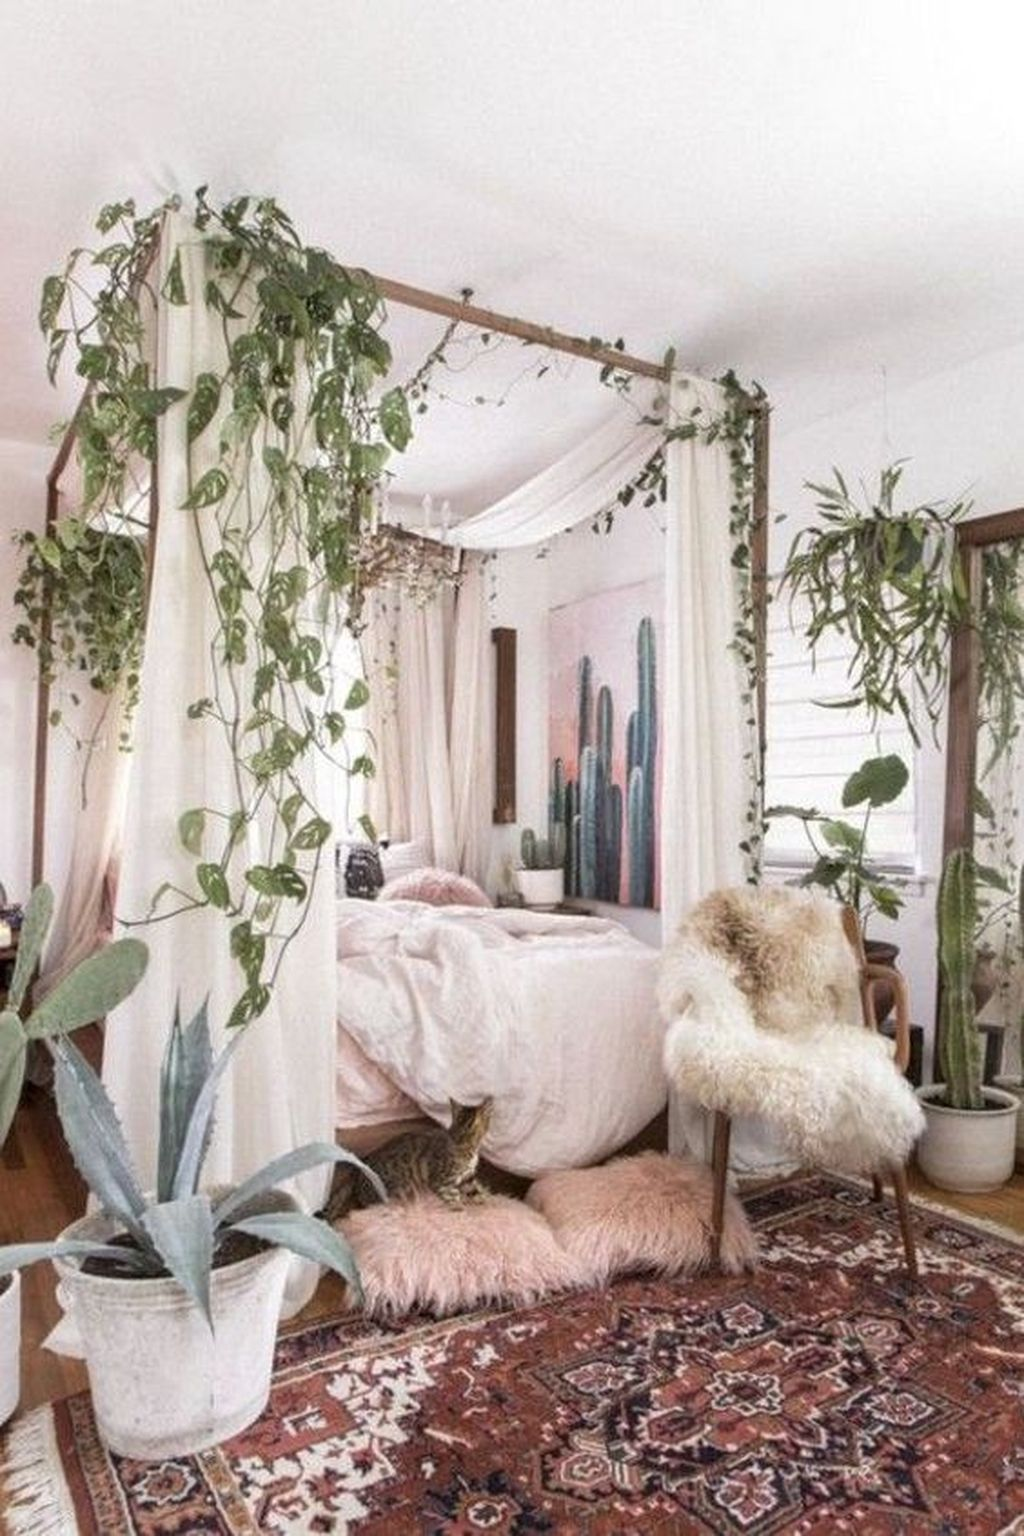 34 Awesome Boho Chic Bedroom Decor Ideas In 2020 Boho Chic